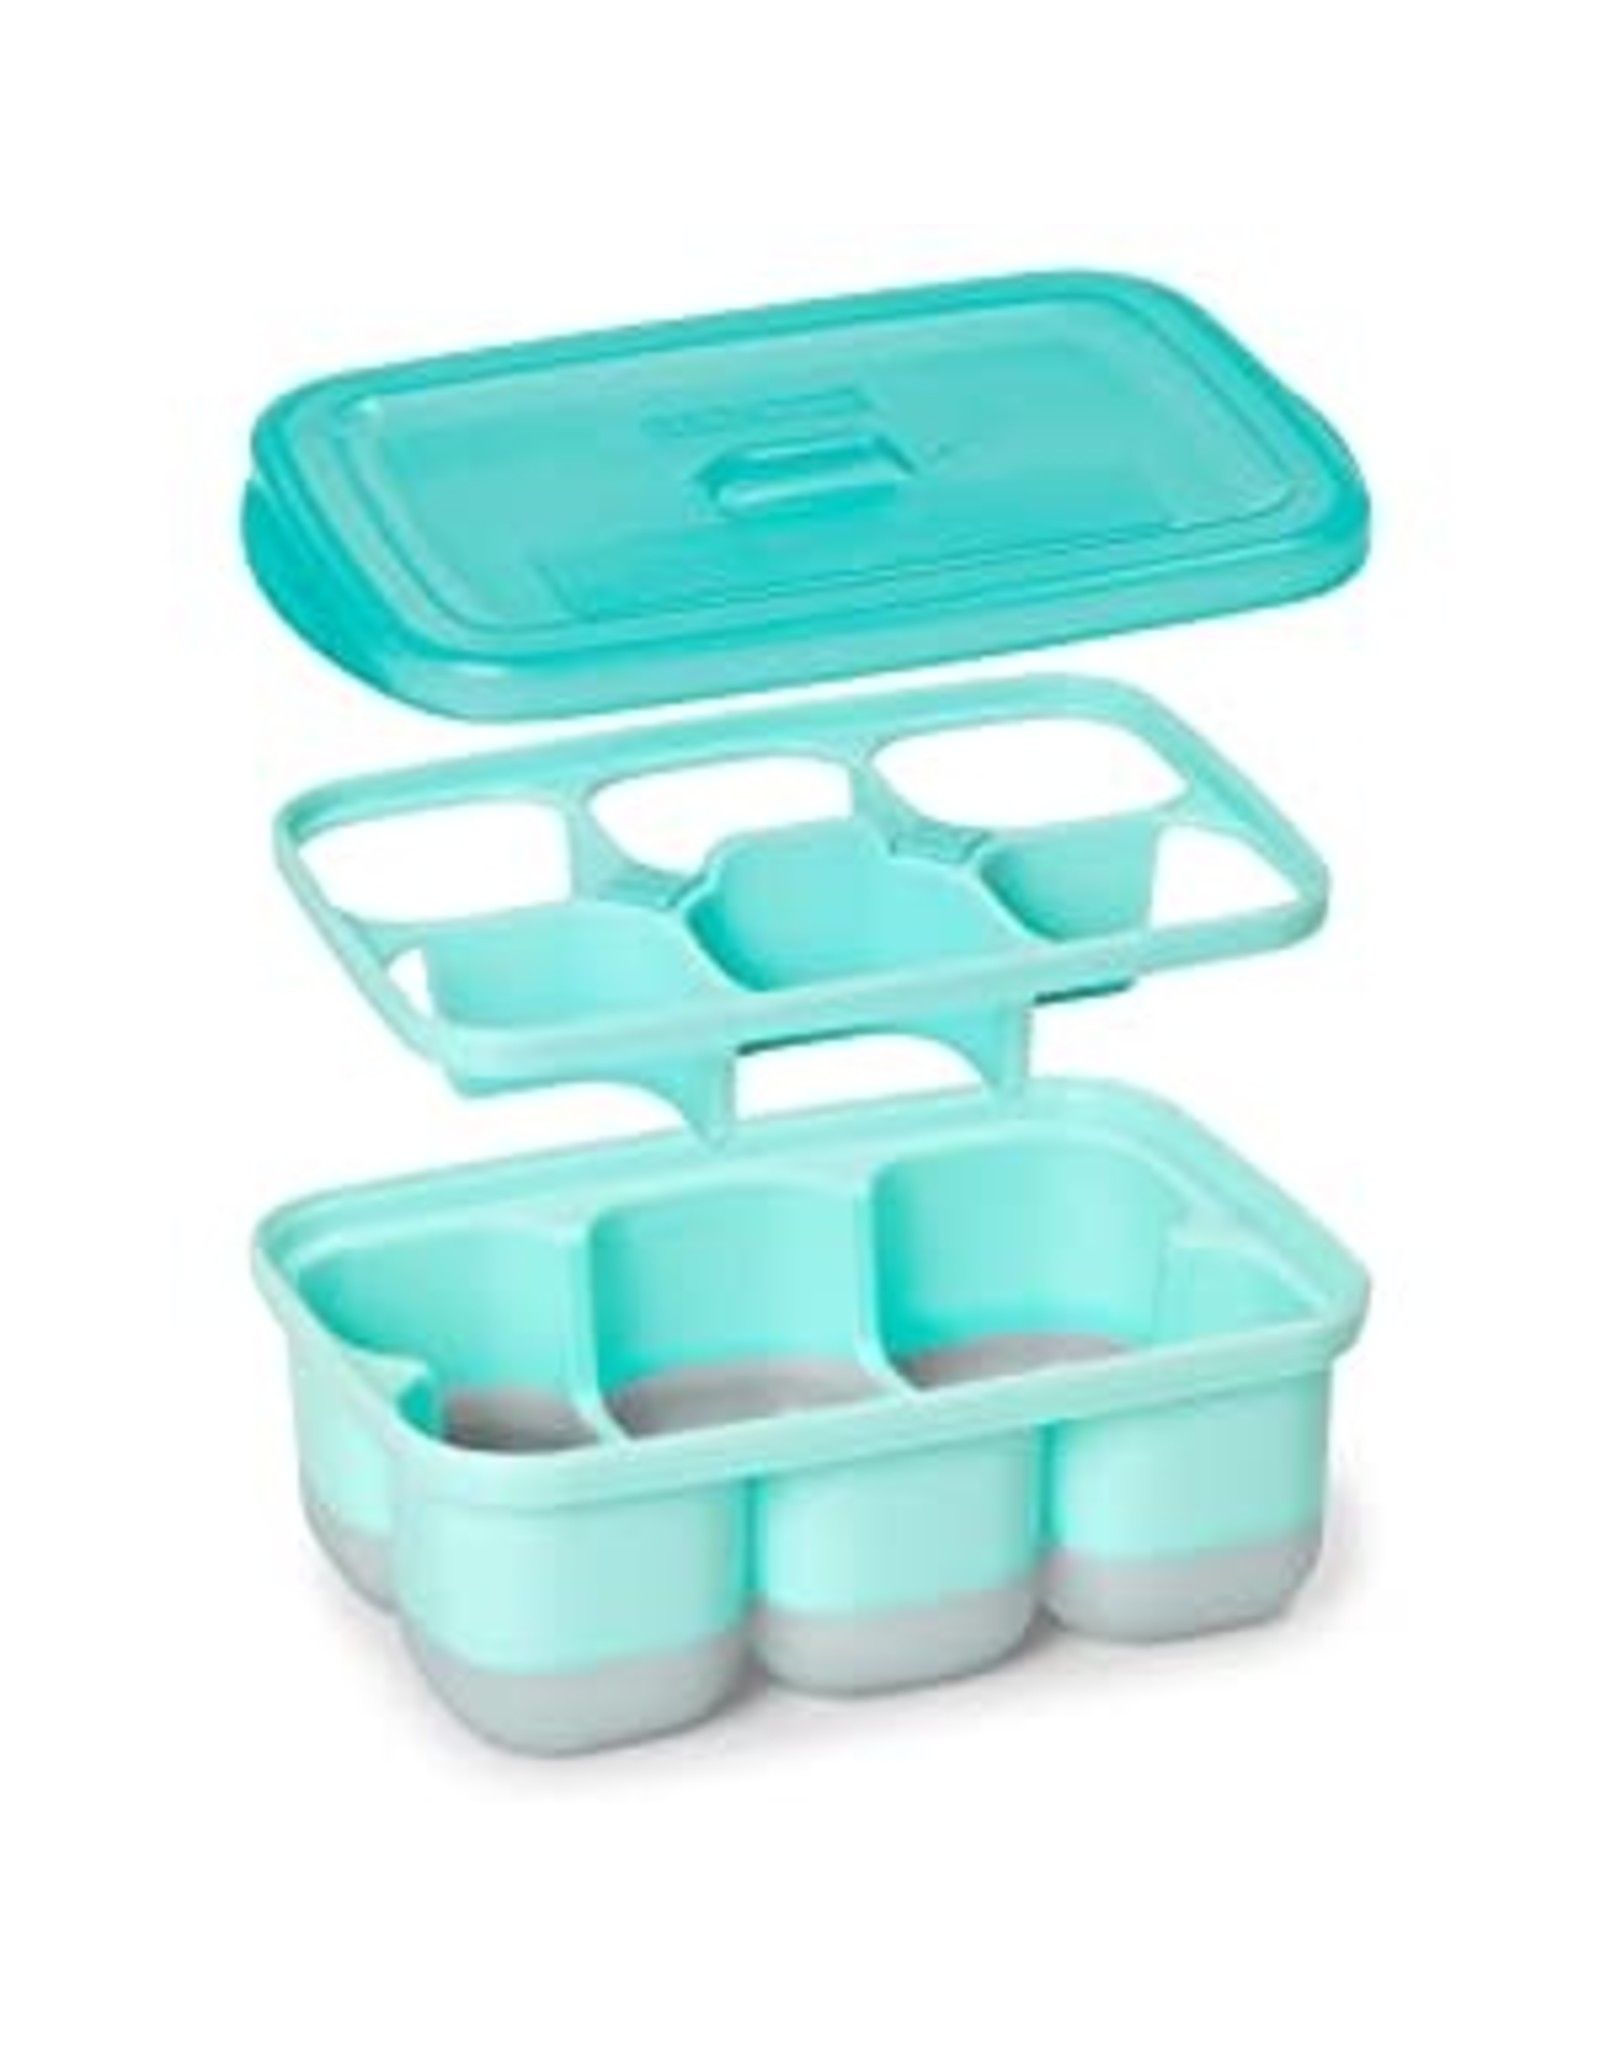 Skip Hop Easy-Fill Freezer Trays